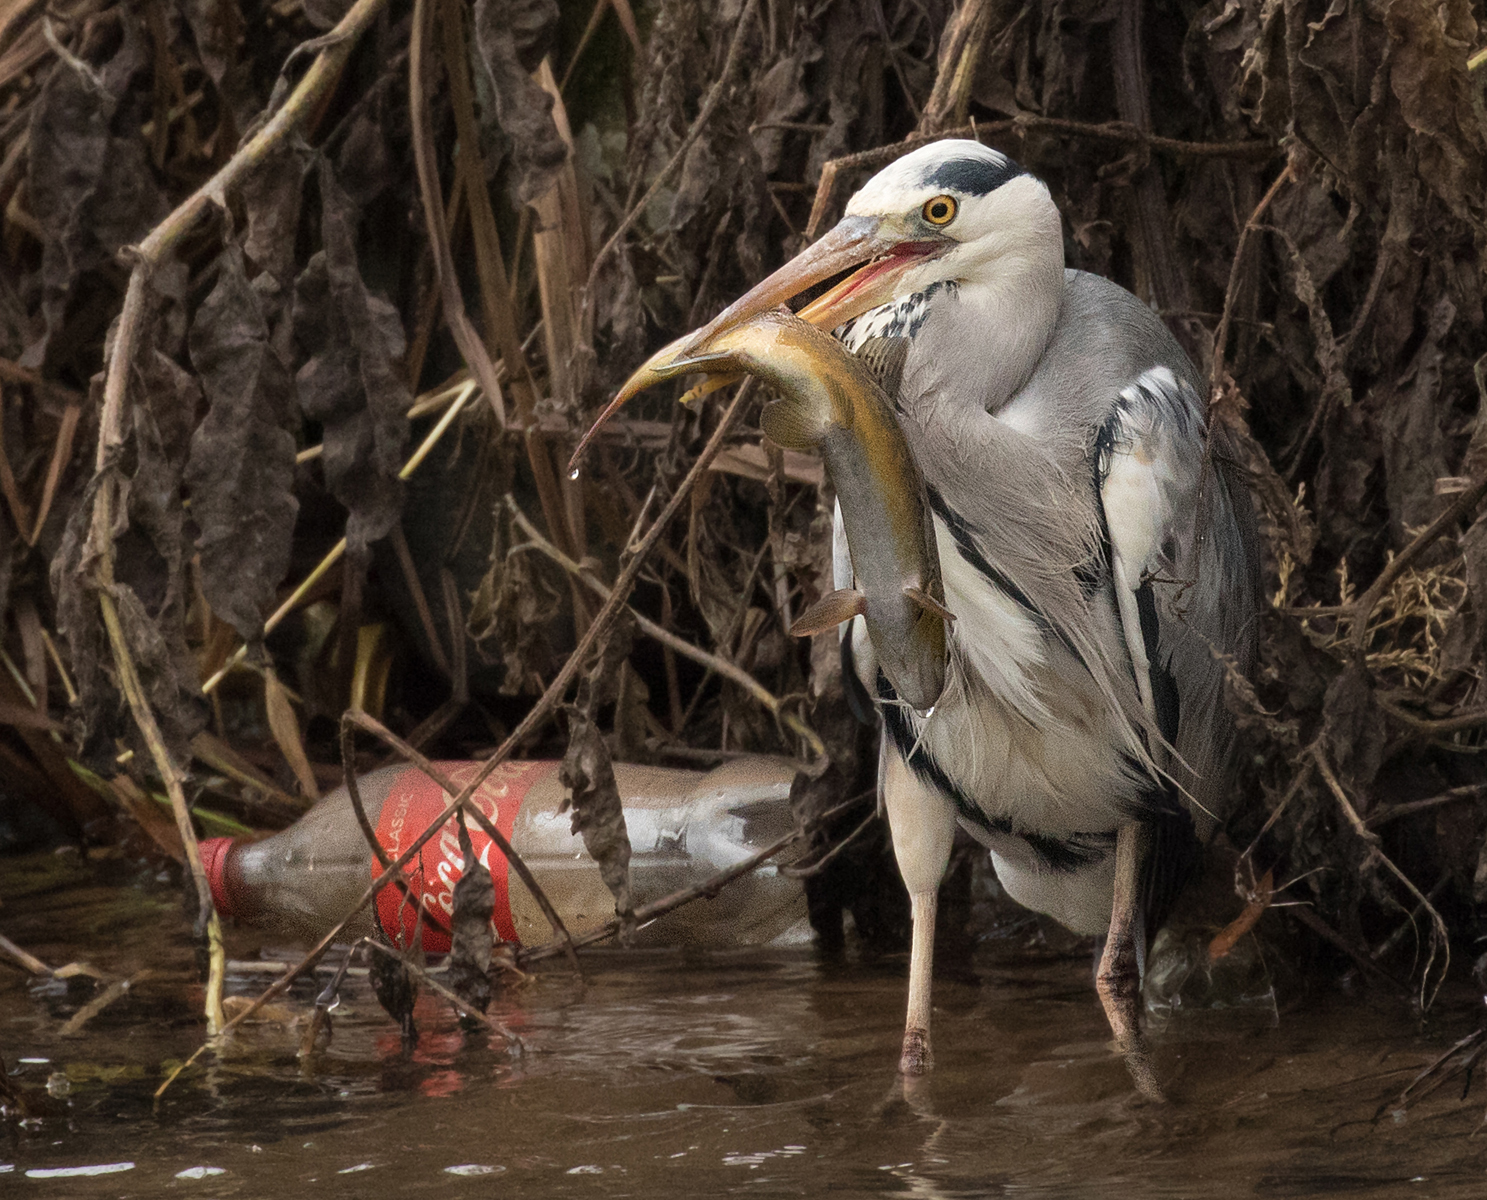 1ST HERON, TROUT AND DISCARDED BOTTLE BY JOE DOBSON DIV2 PROJECTED